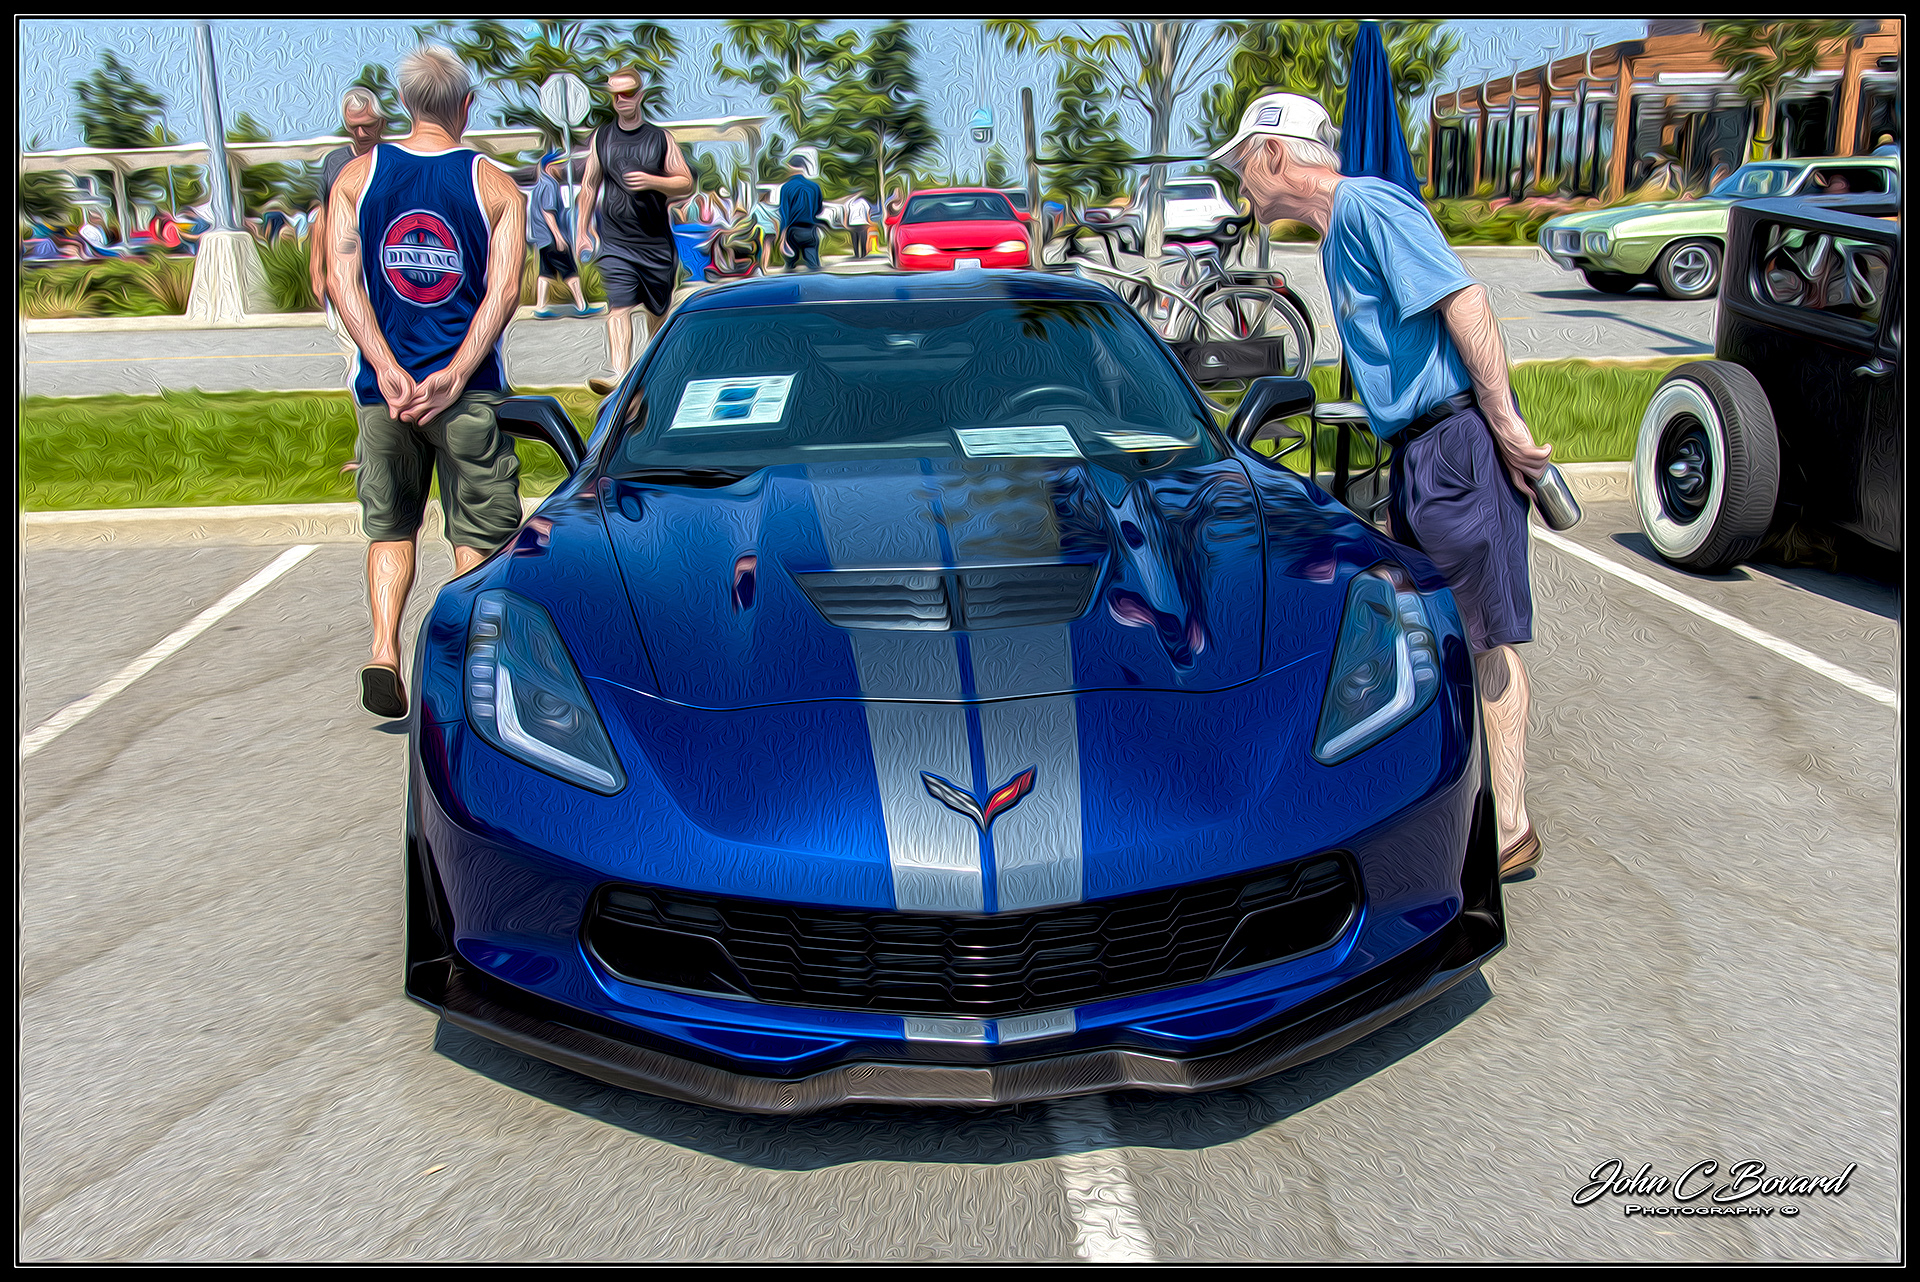 Pacific Northwest Show Camaros Corvettes ZVettecom - Car shows in washington state